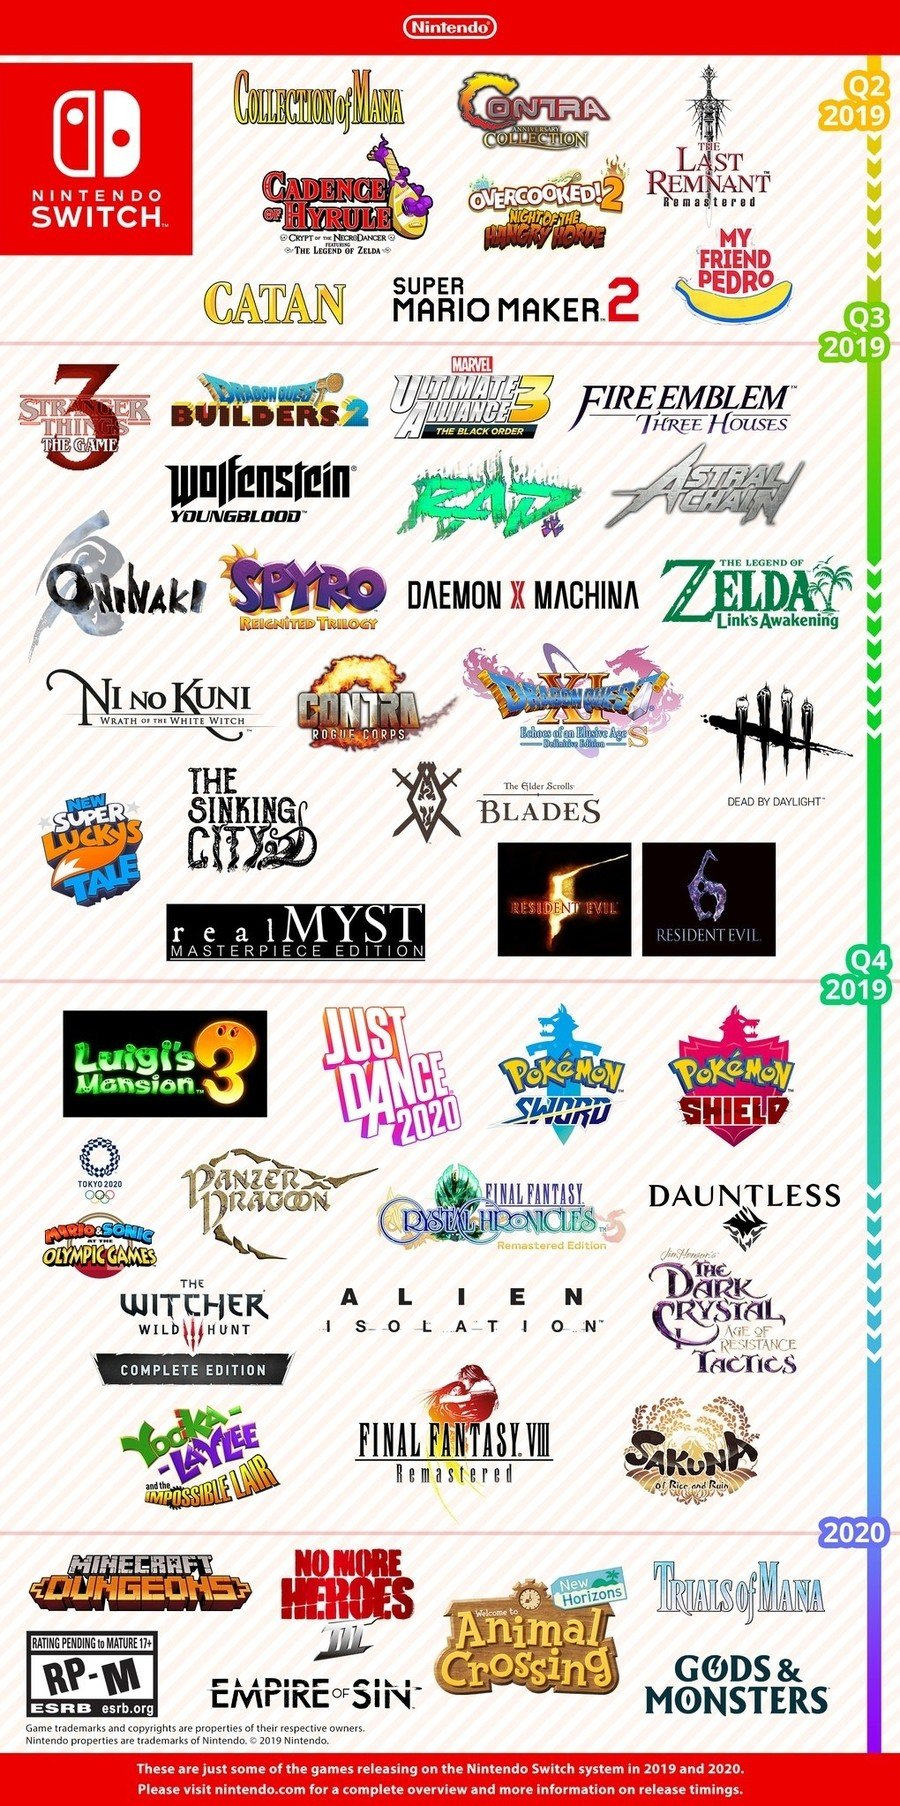 IMAGE(http://images.nintendolife.com/61318c9617db7/nintendo-switch-releases-2019-2020.900x.jpg)